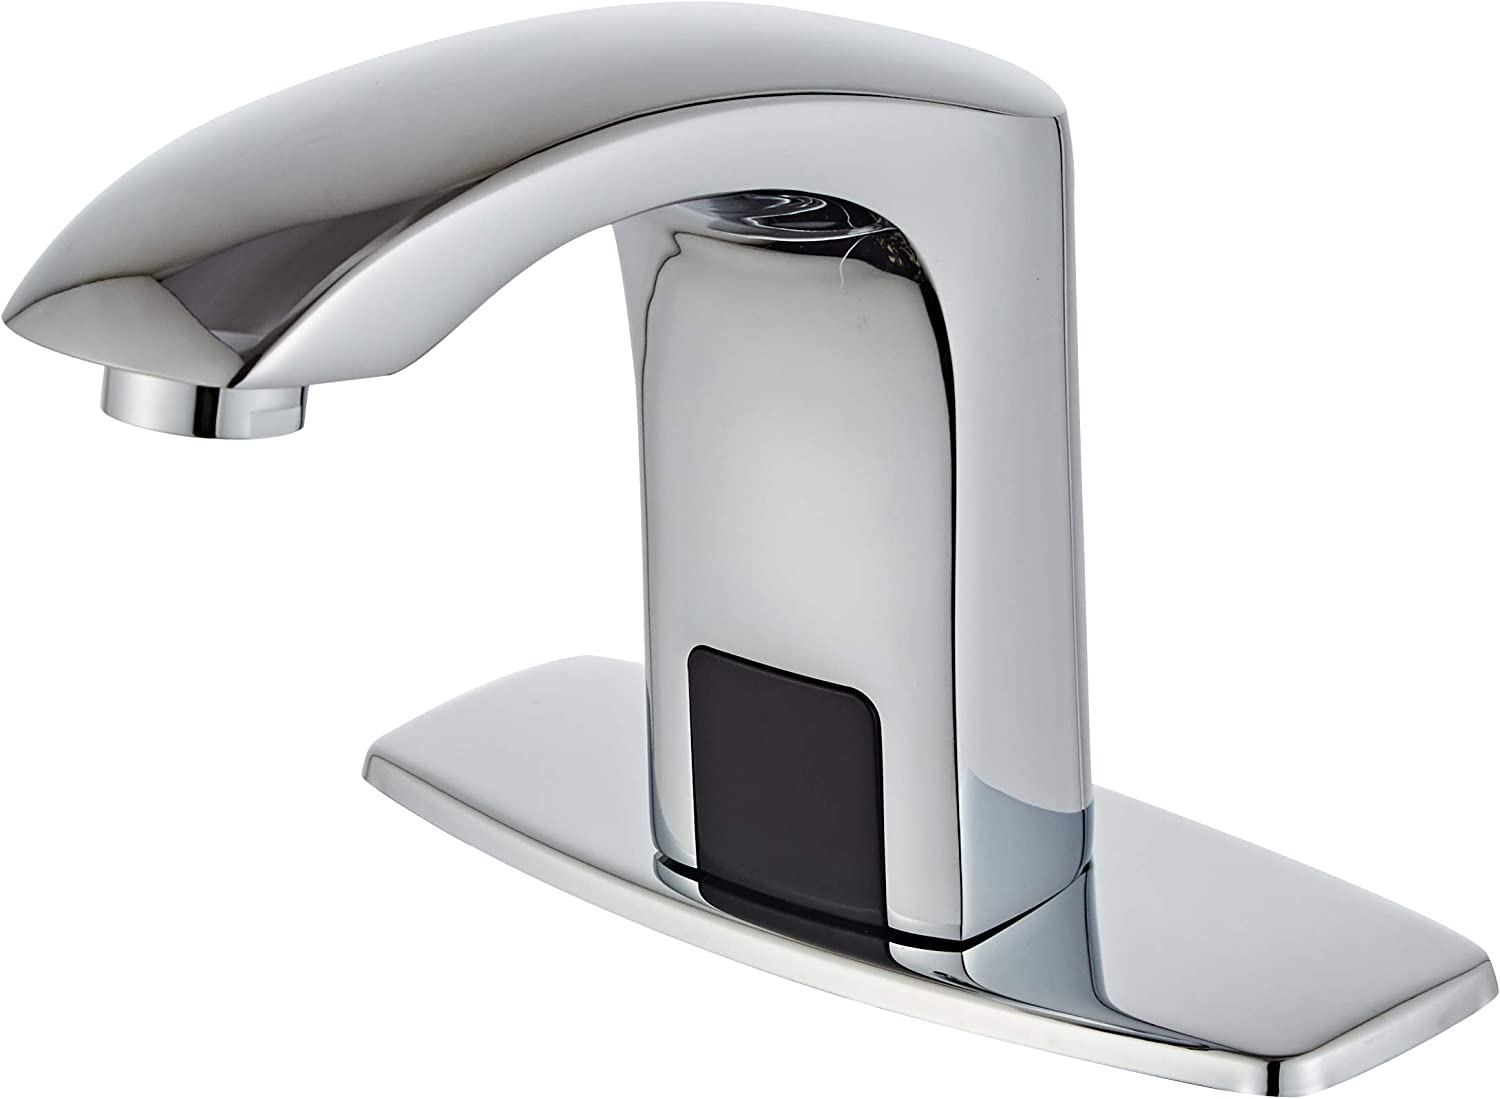 Luxice Sensor Automatic Touchless Bathroom Sink Faucet Hot & Cold Mixer Cover Plate Included Faucet, Chrome Finished - -